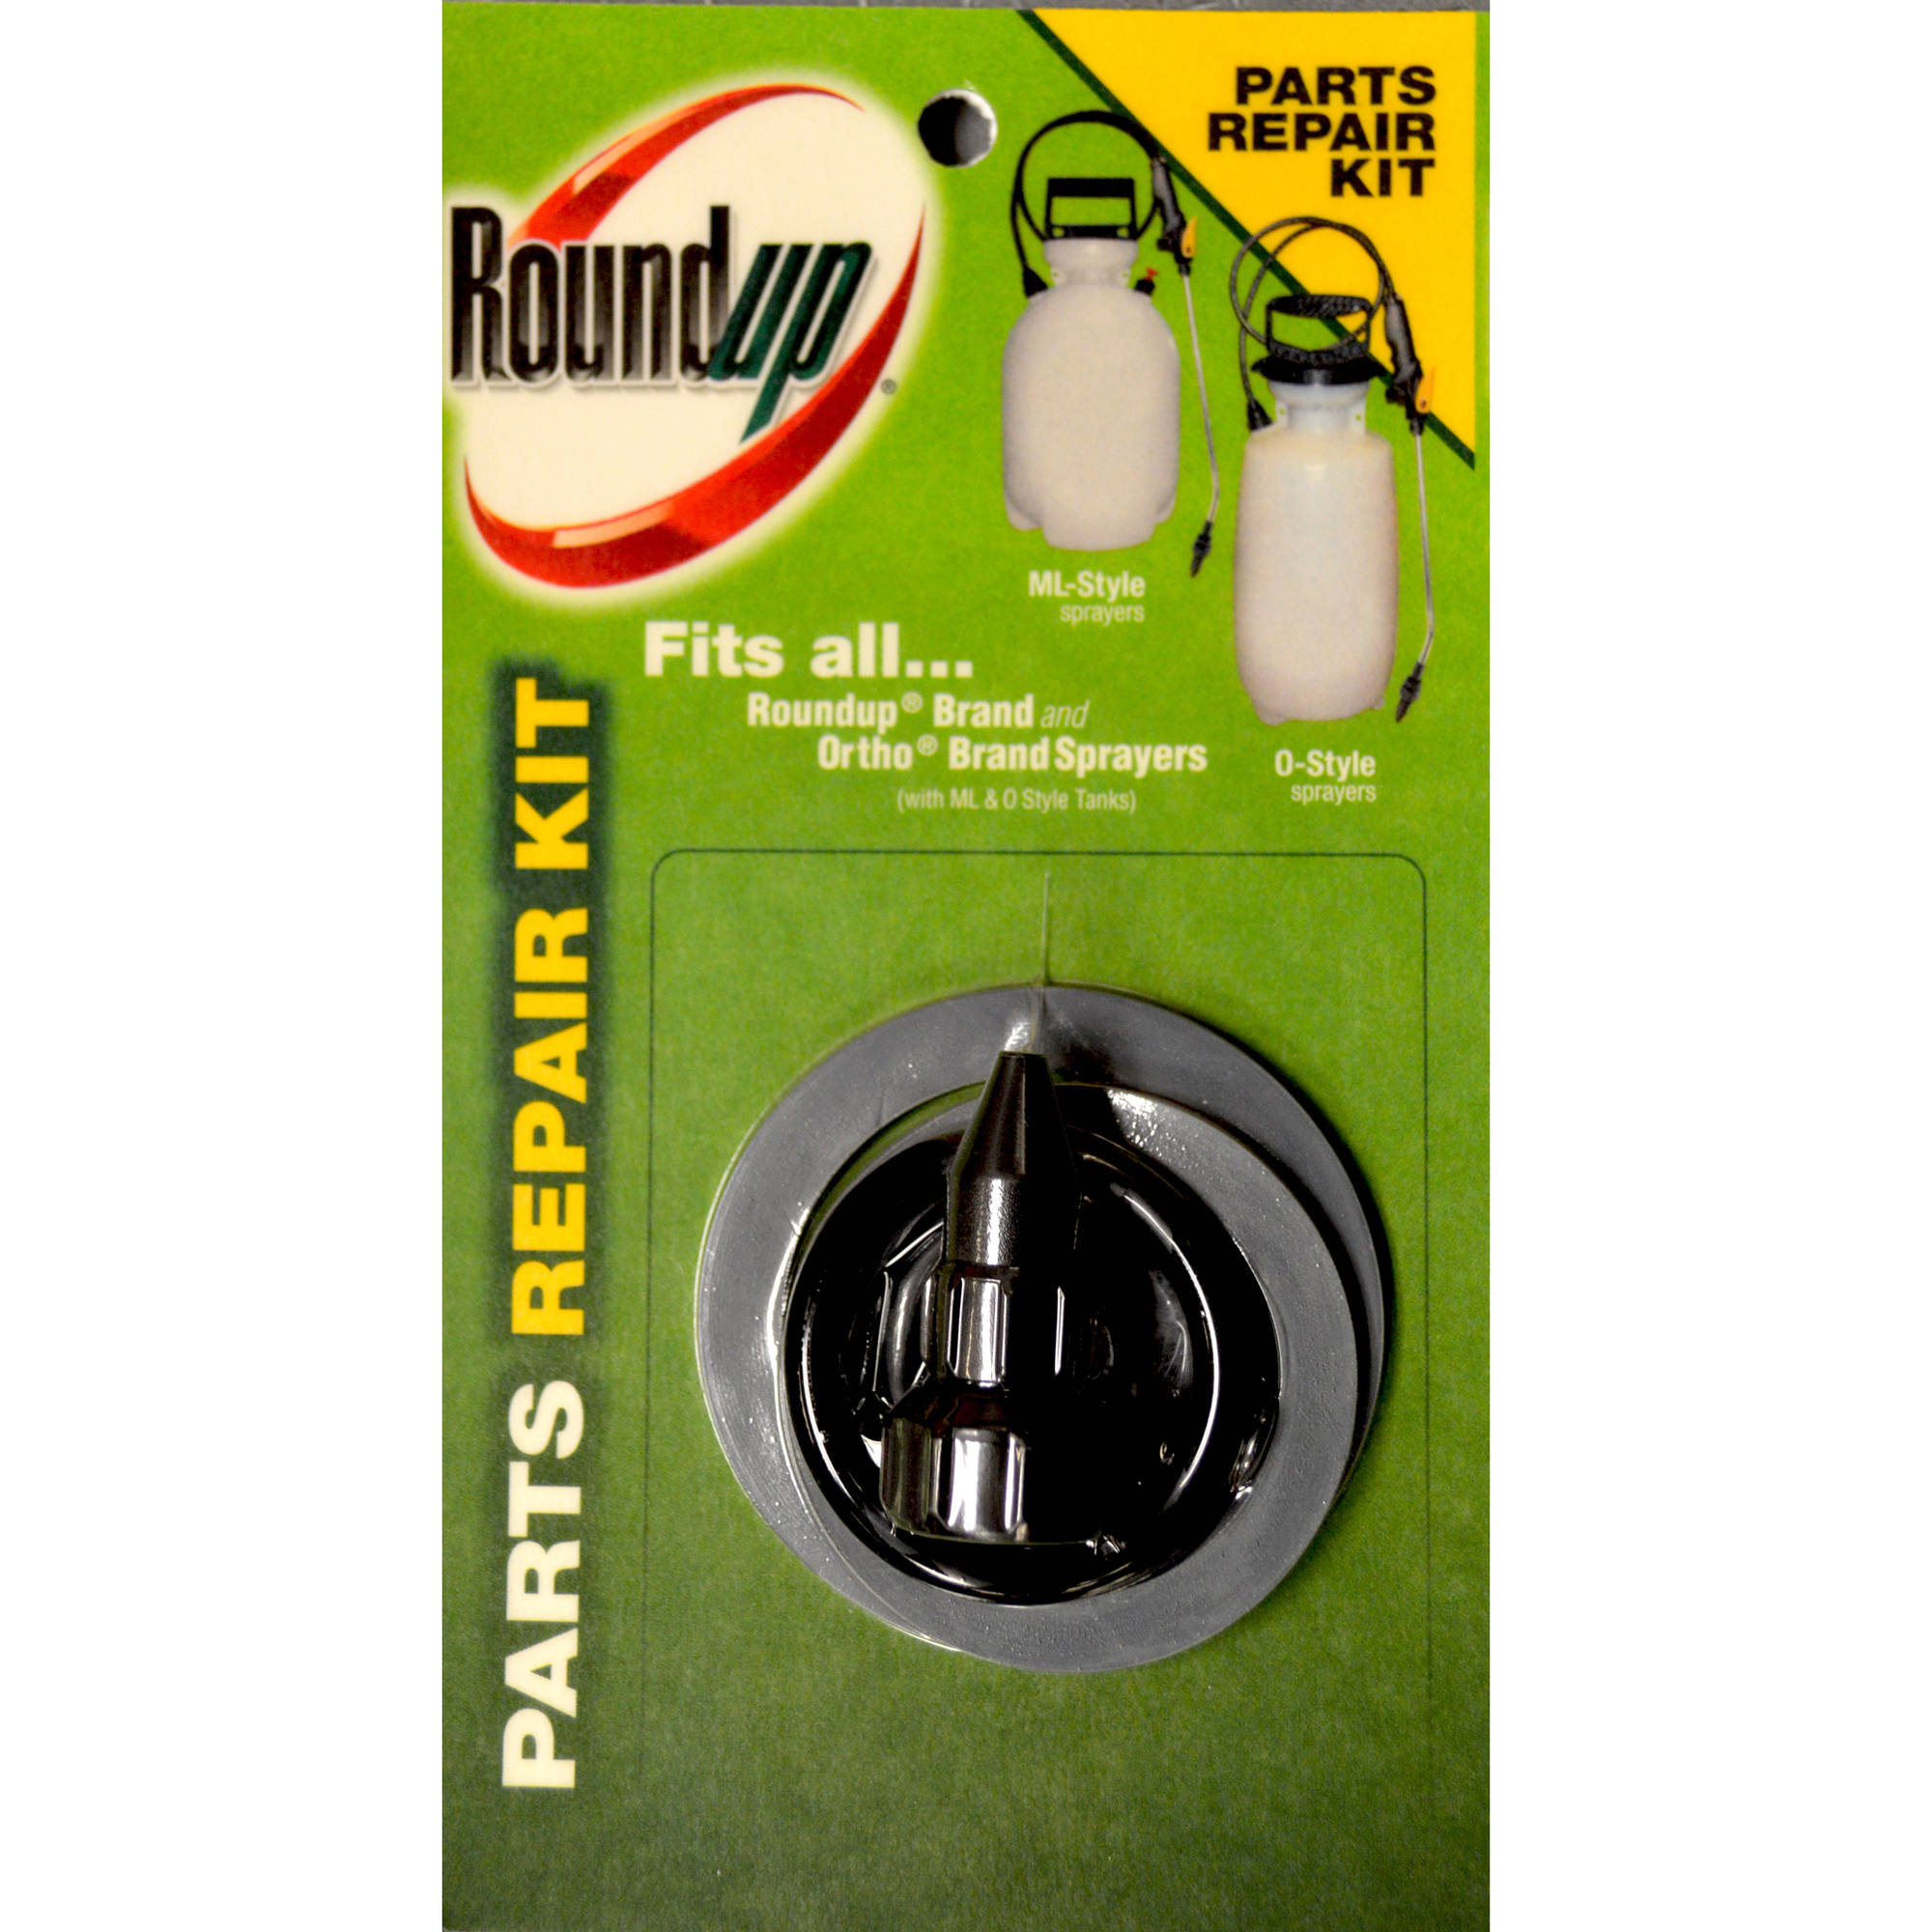 Roundup Gasket and Nozzle Replacement Kit